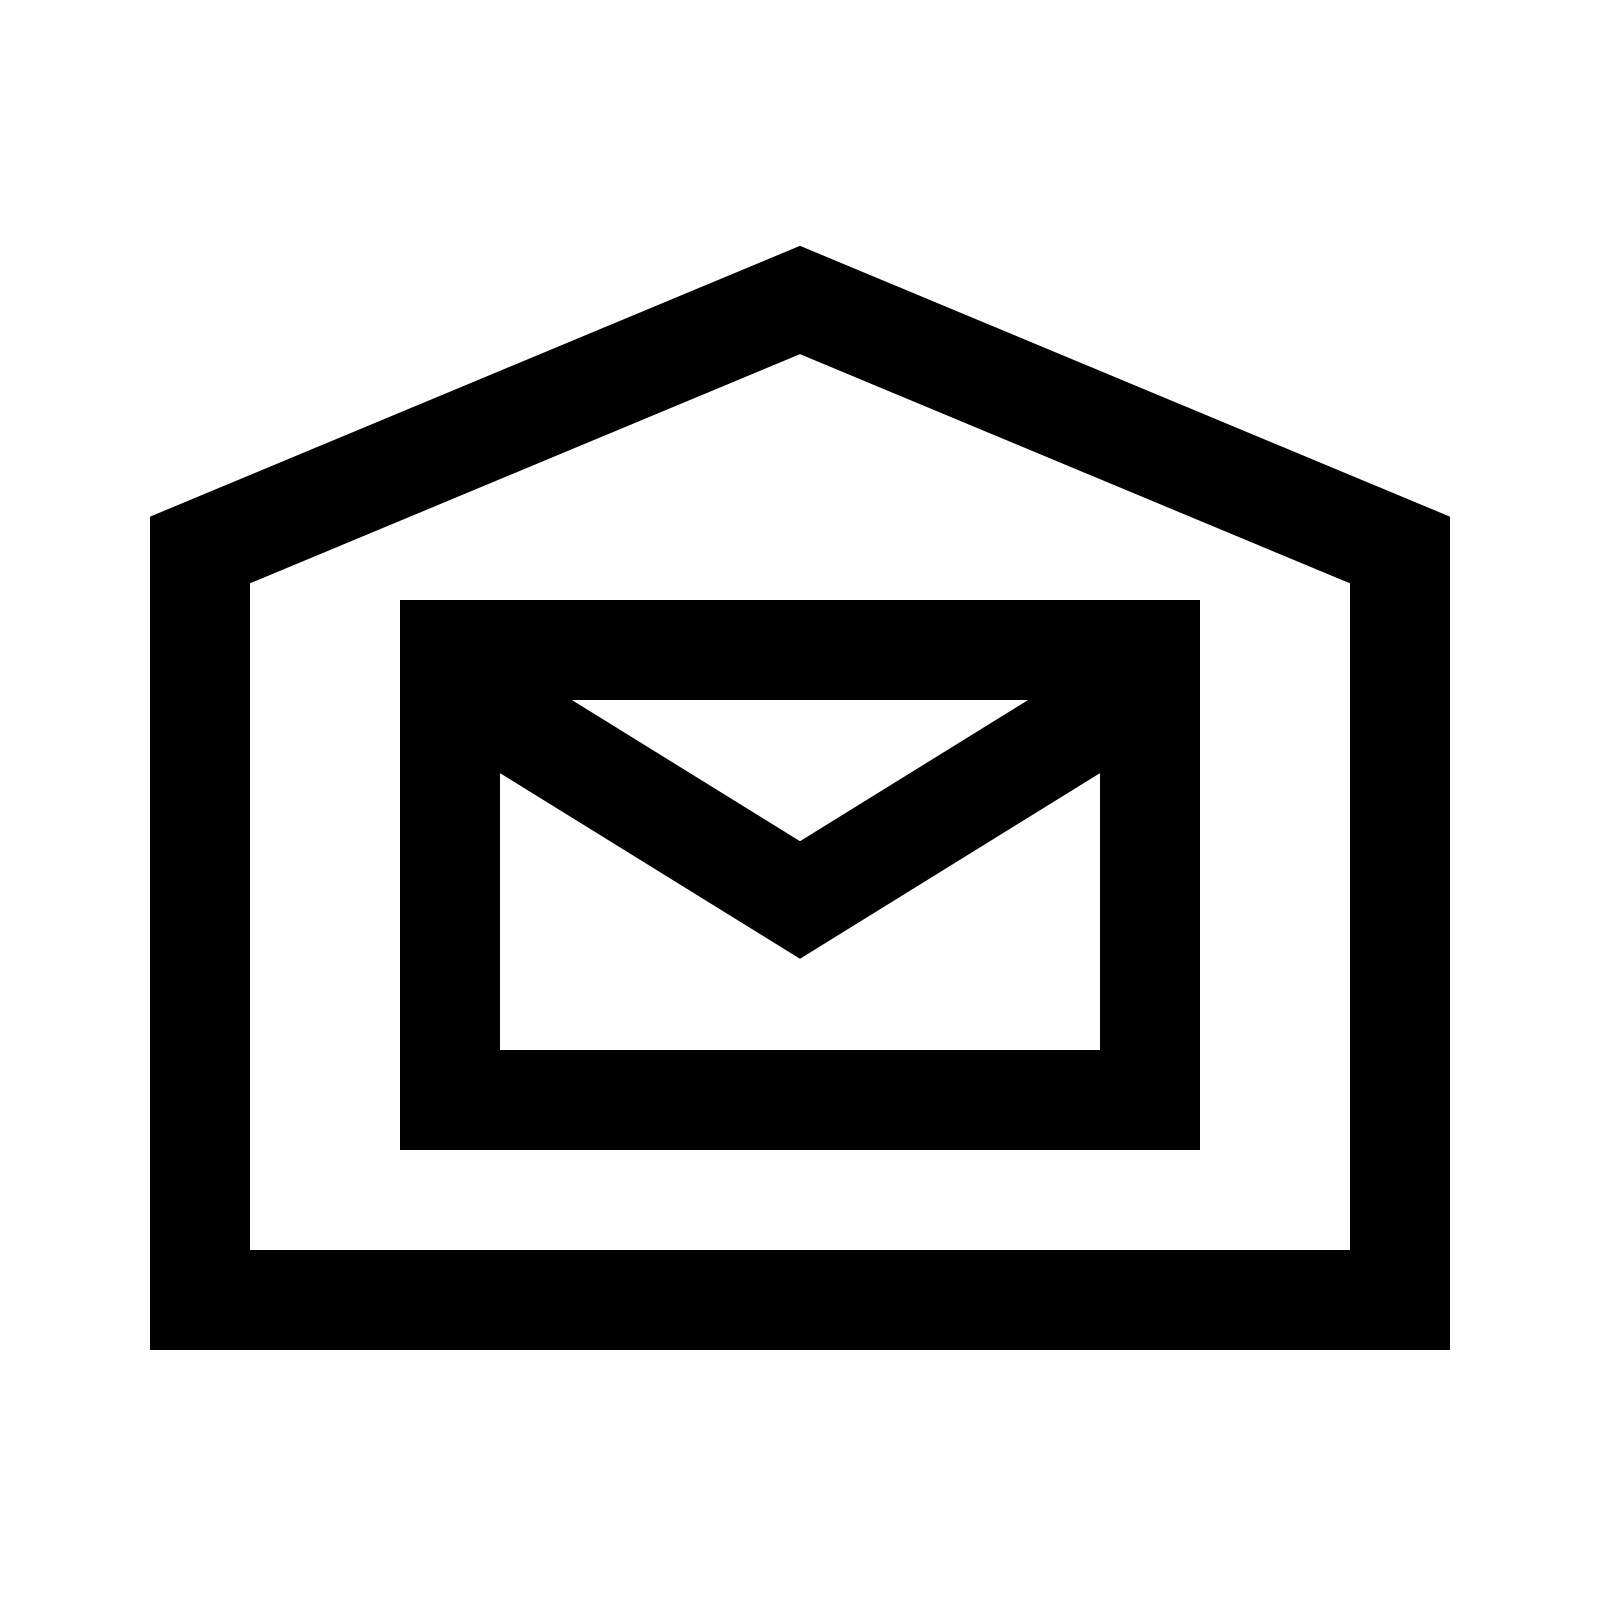 Computer icons symbol transprent. Mail clipart post office